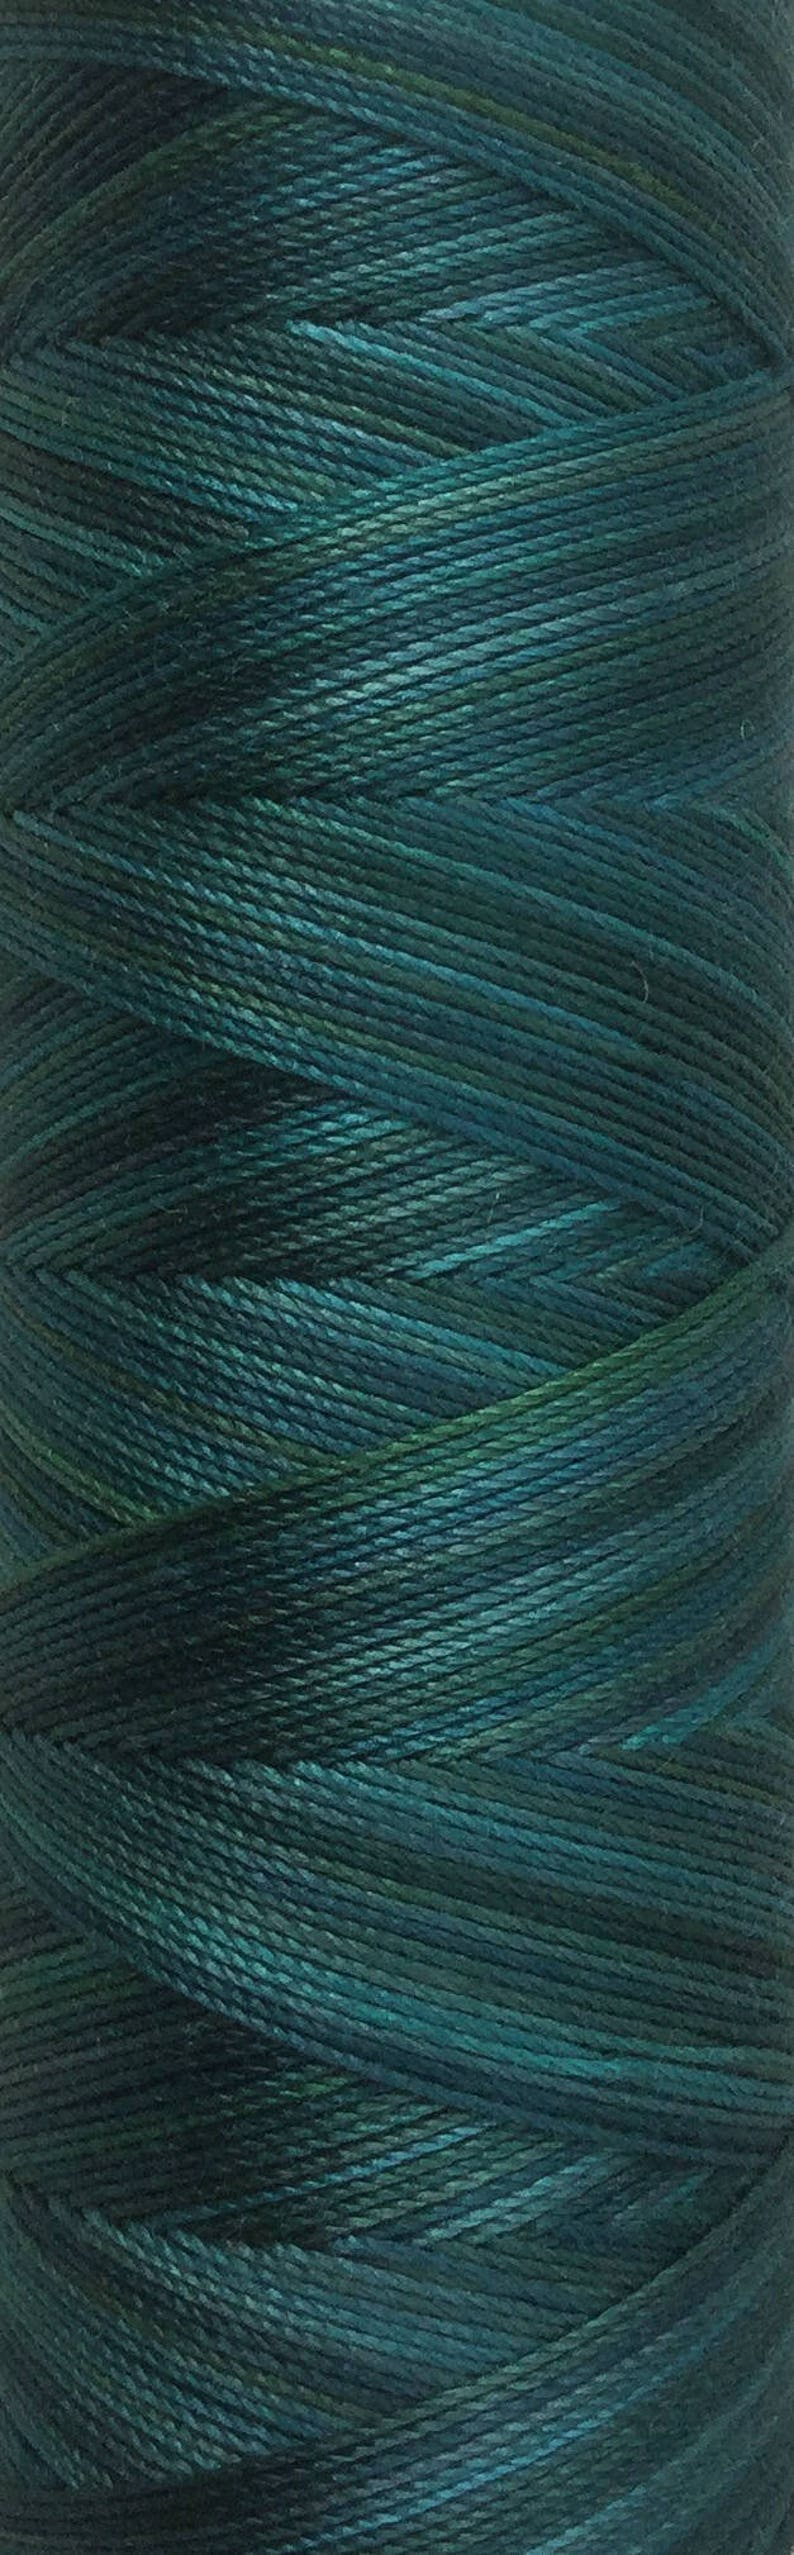 No.53 Ocean Hand Dyed Cotton Machine Thread Individual Spool image 0